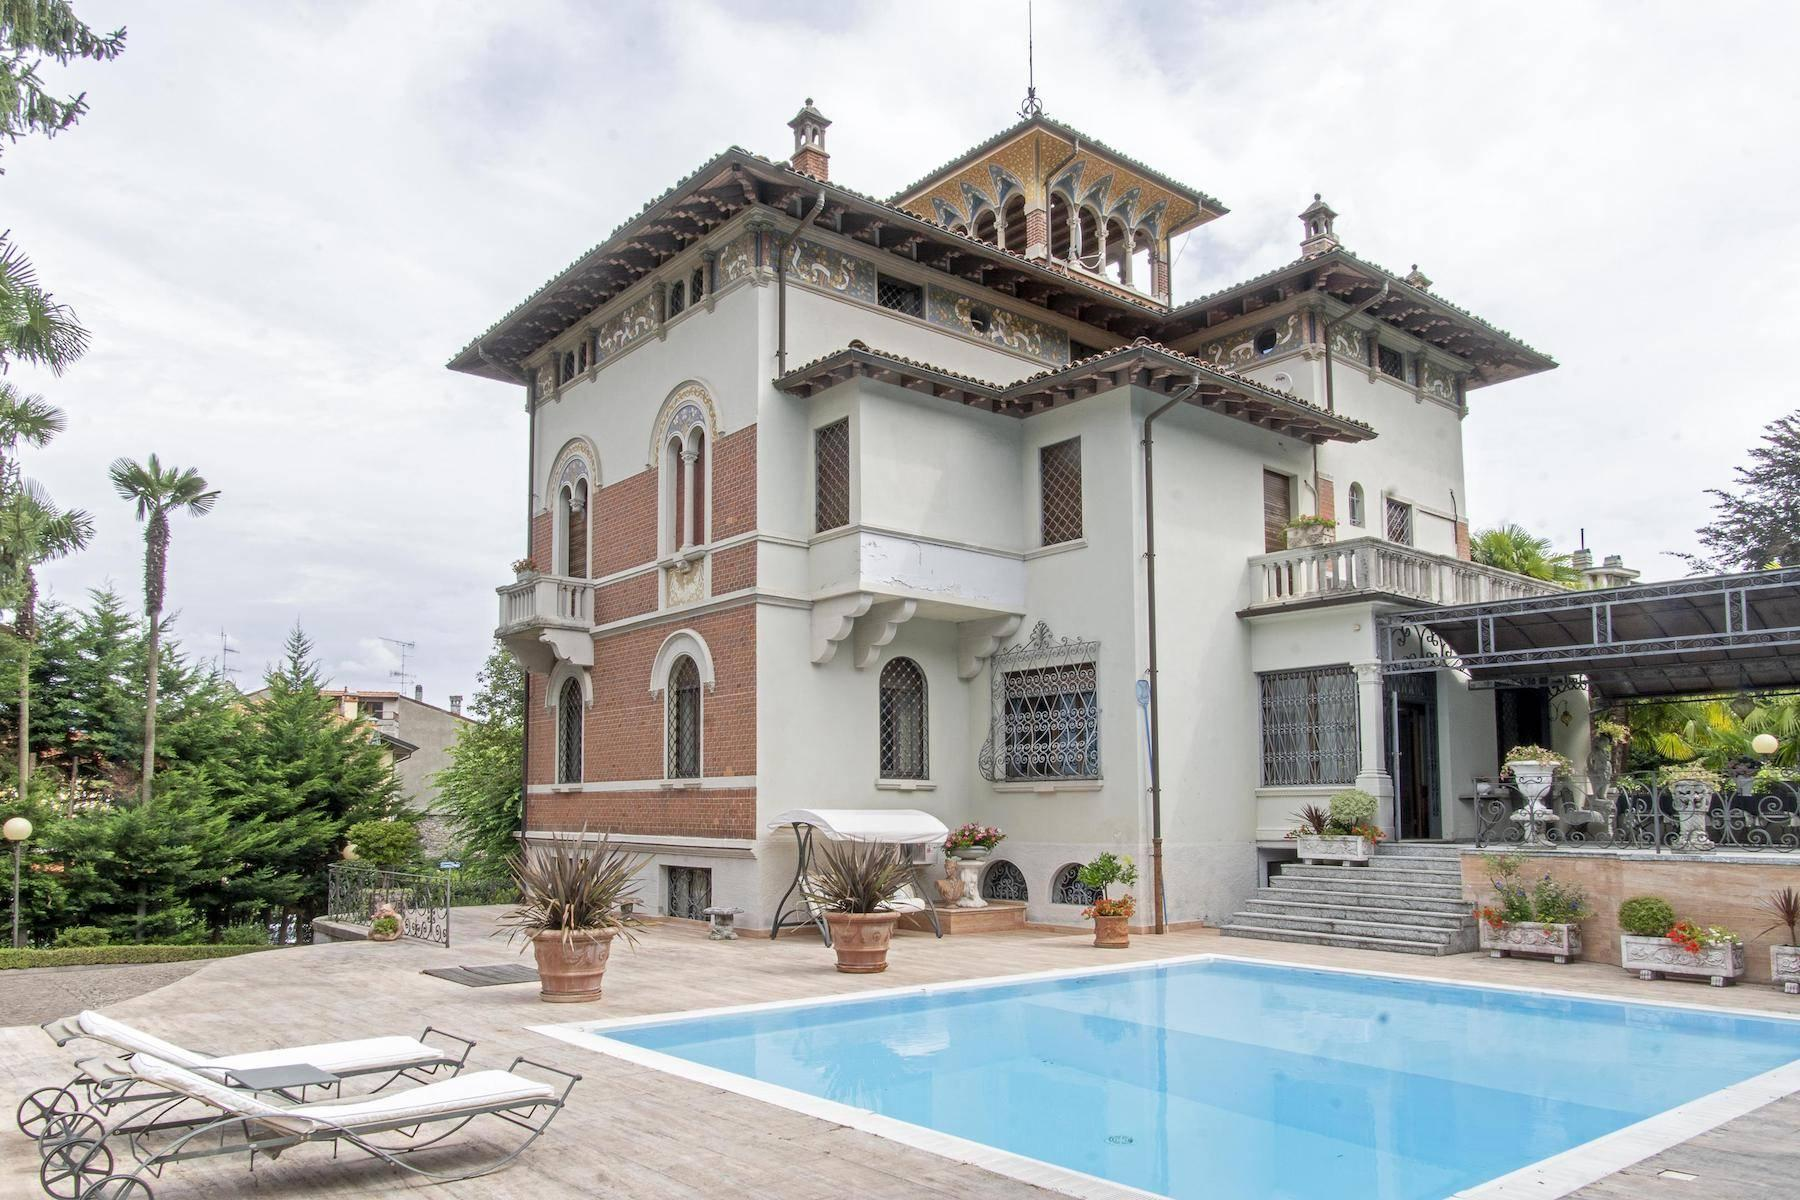 Majestic period villa with swimming pool and tower in the heart of Stresa - 43